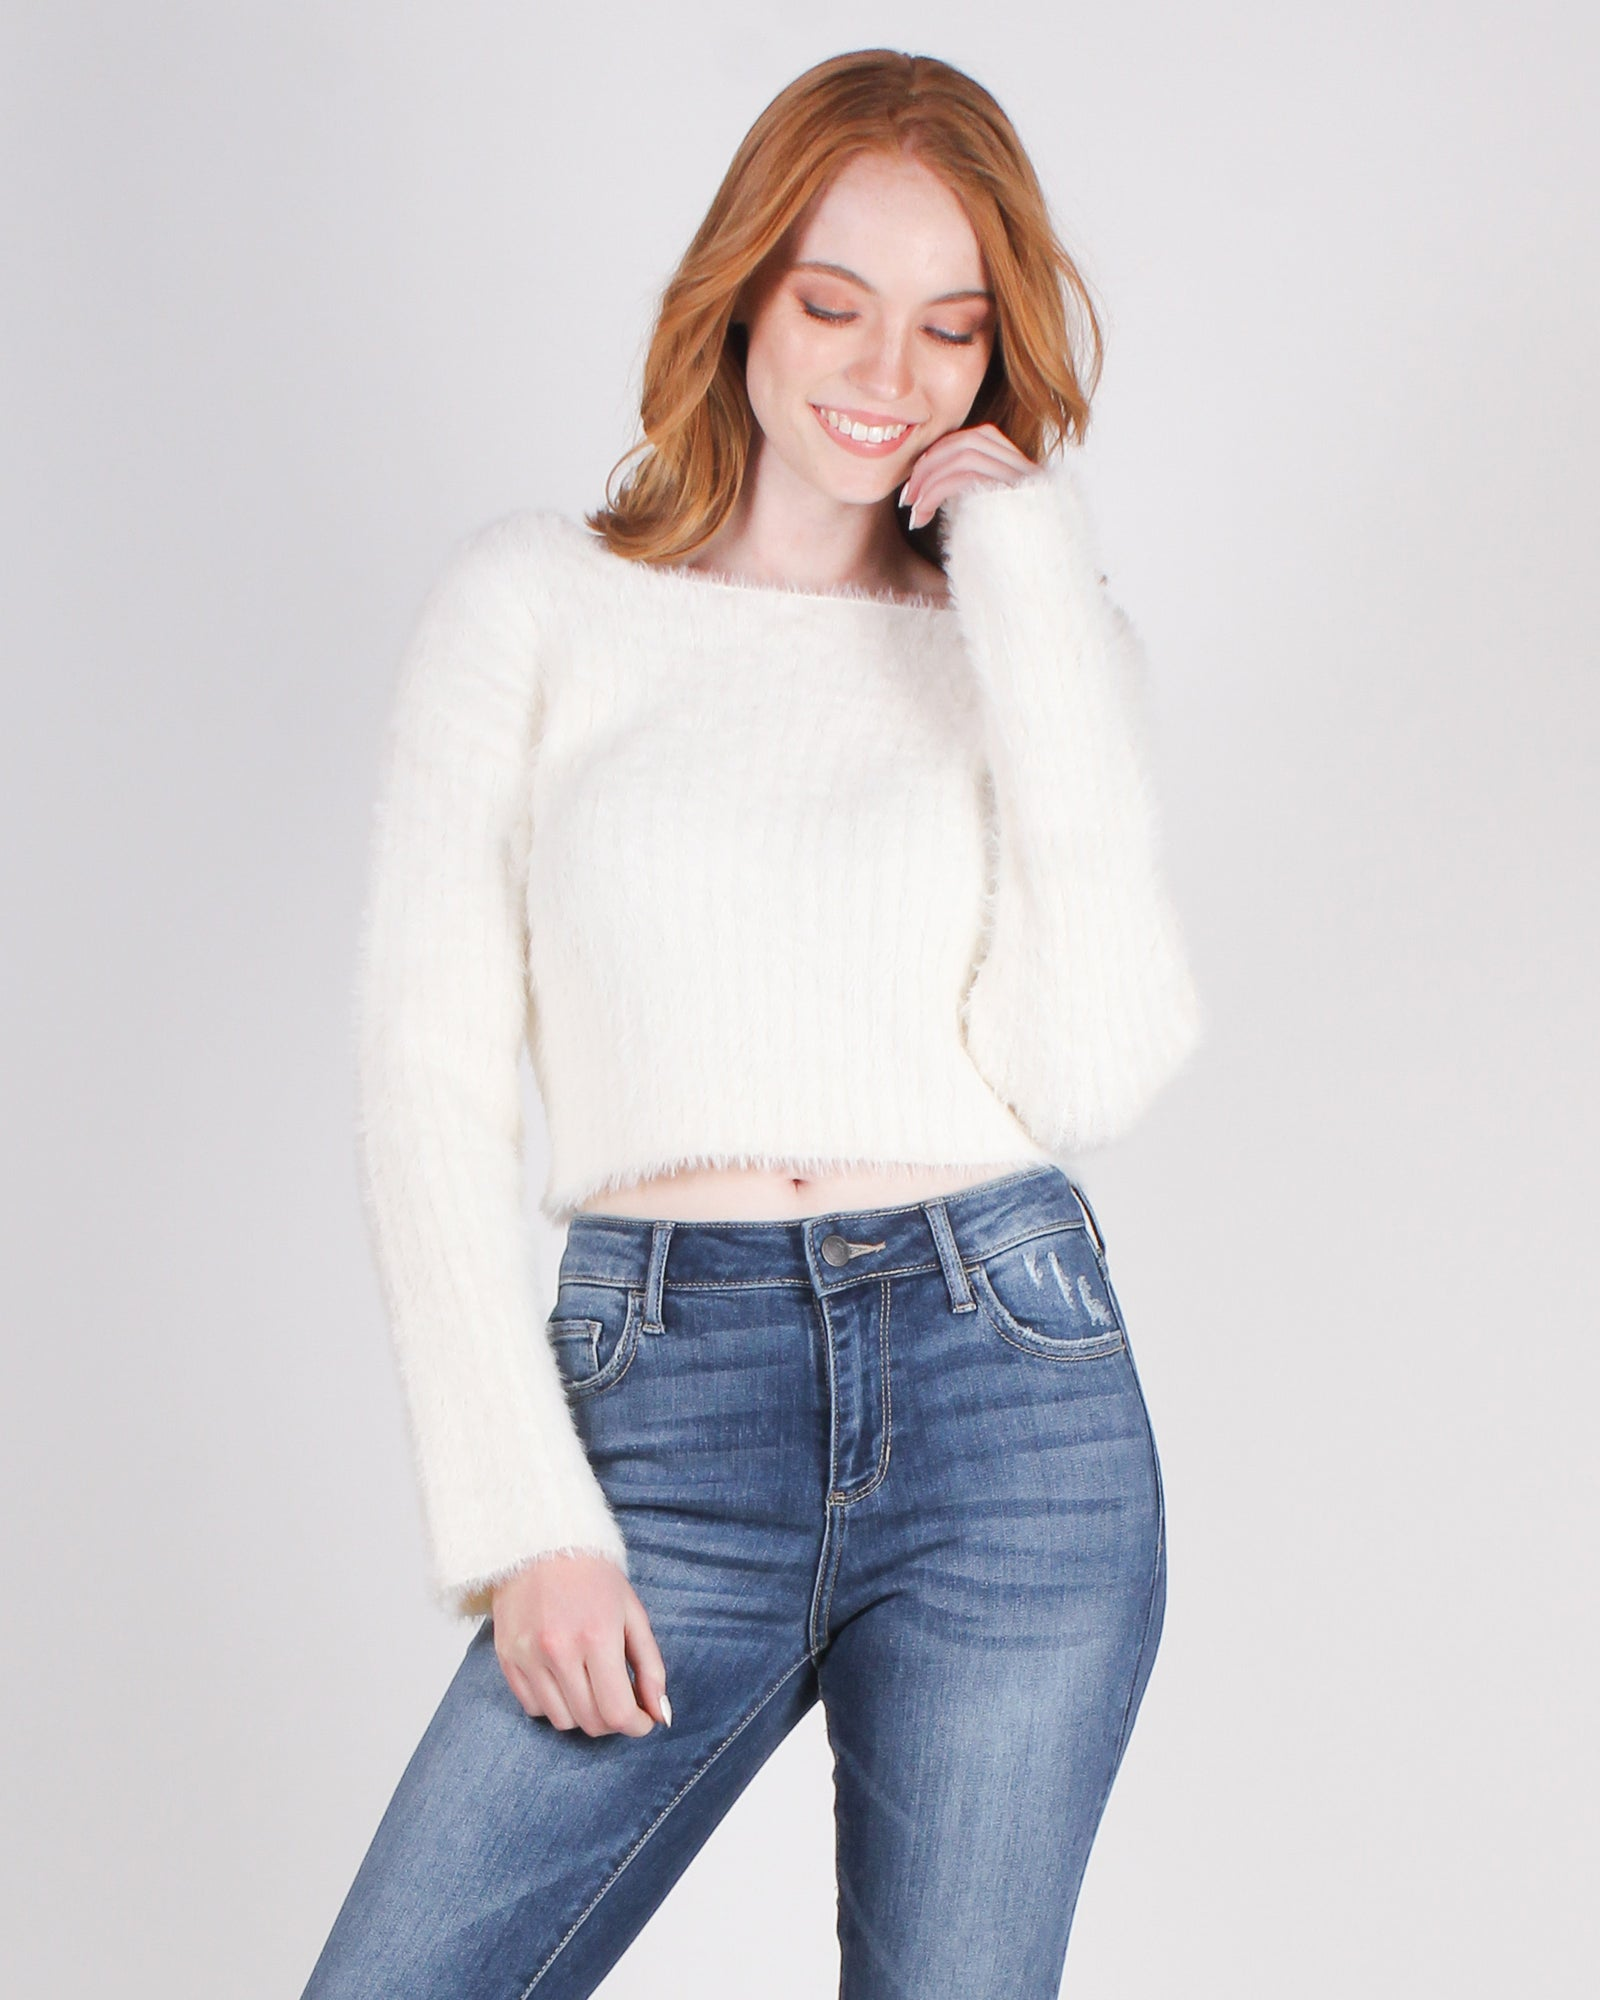 q clothing european wholesale clothing suppliers